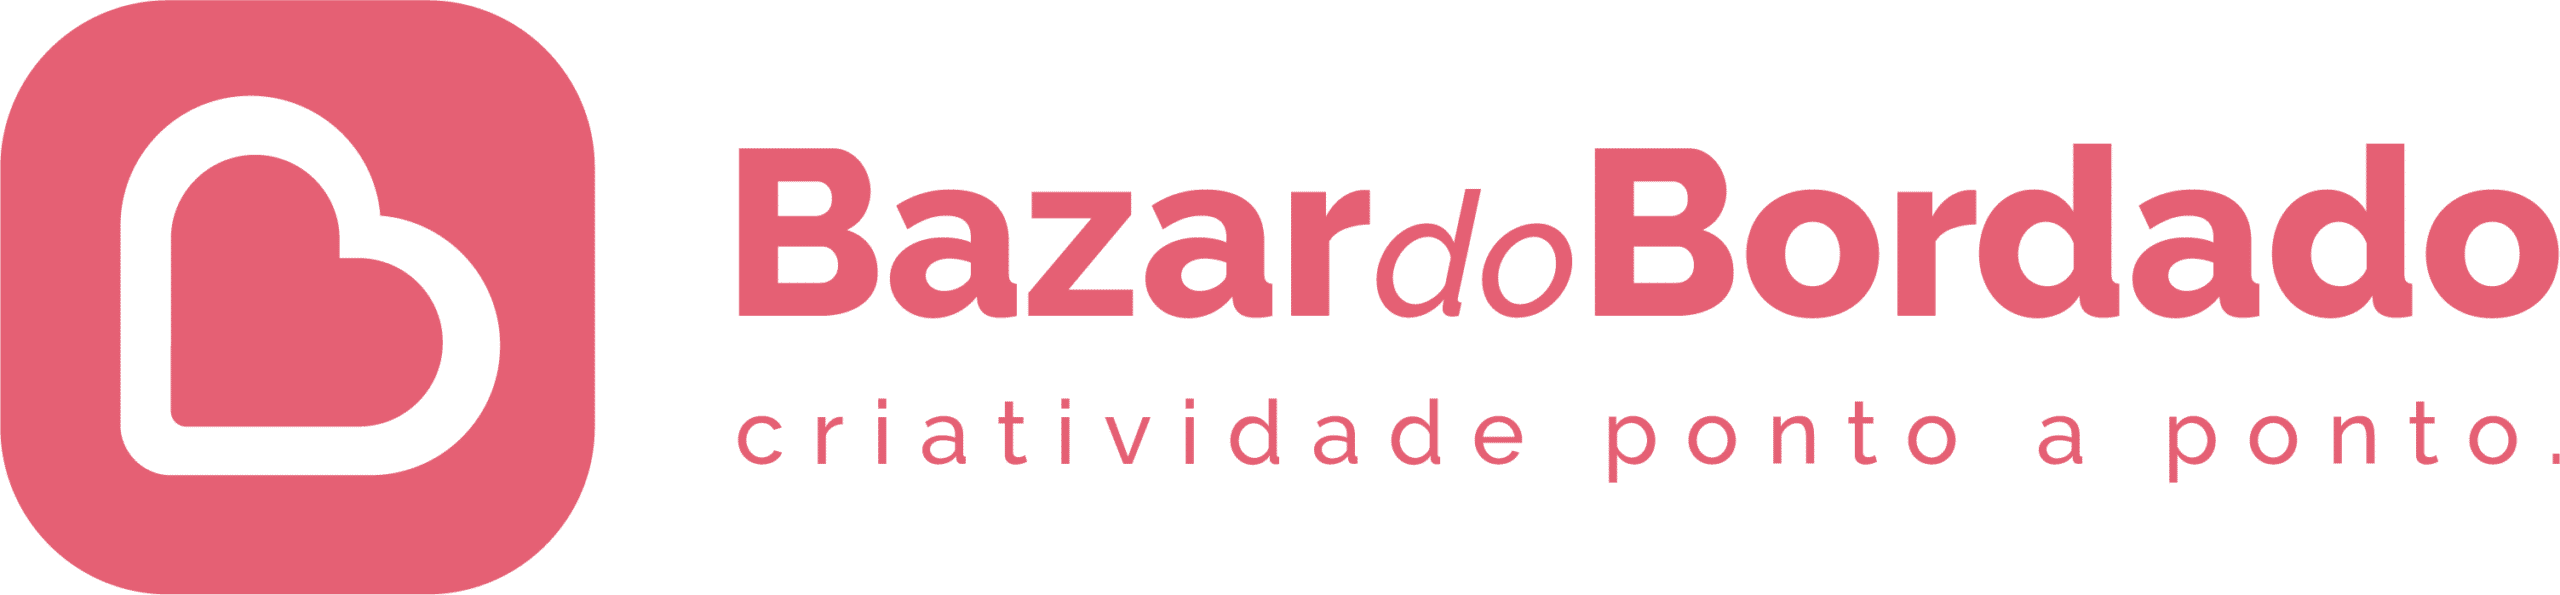 Bazar do Bordado